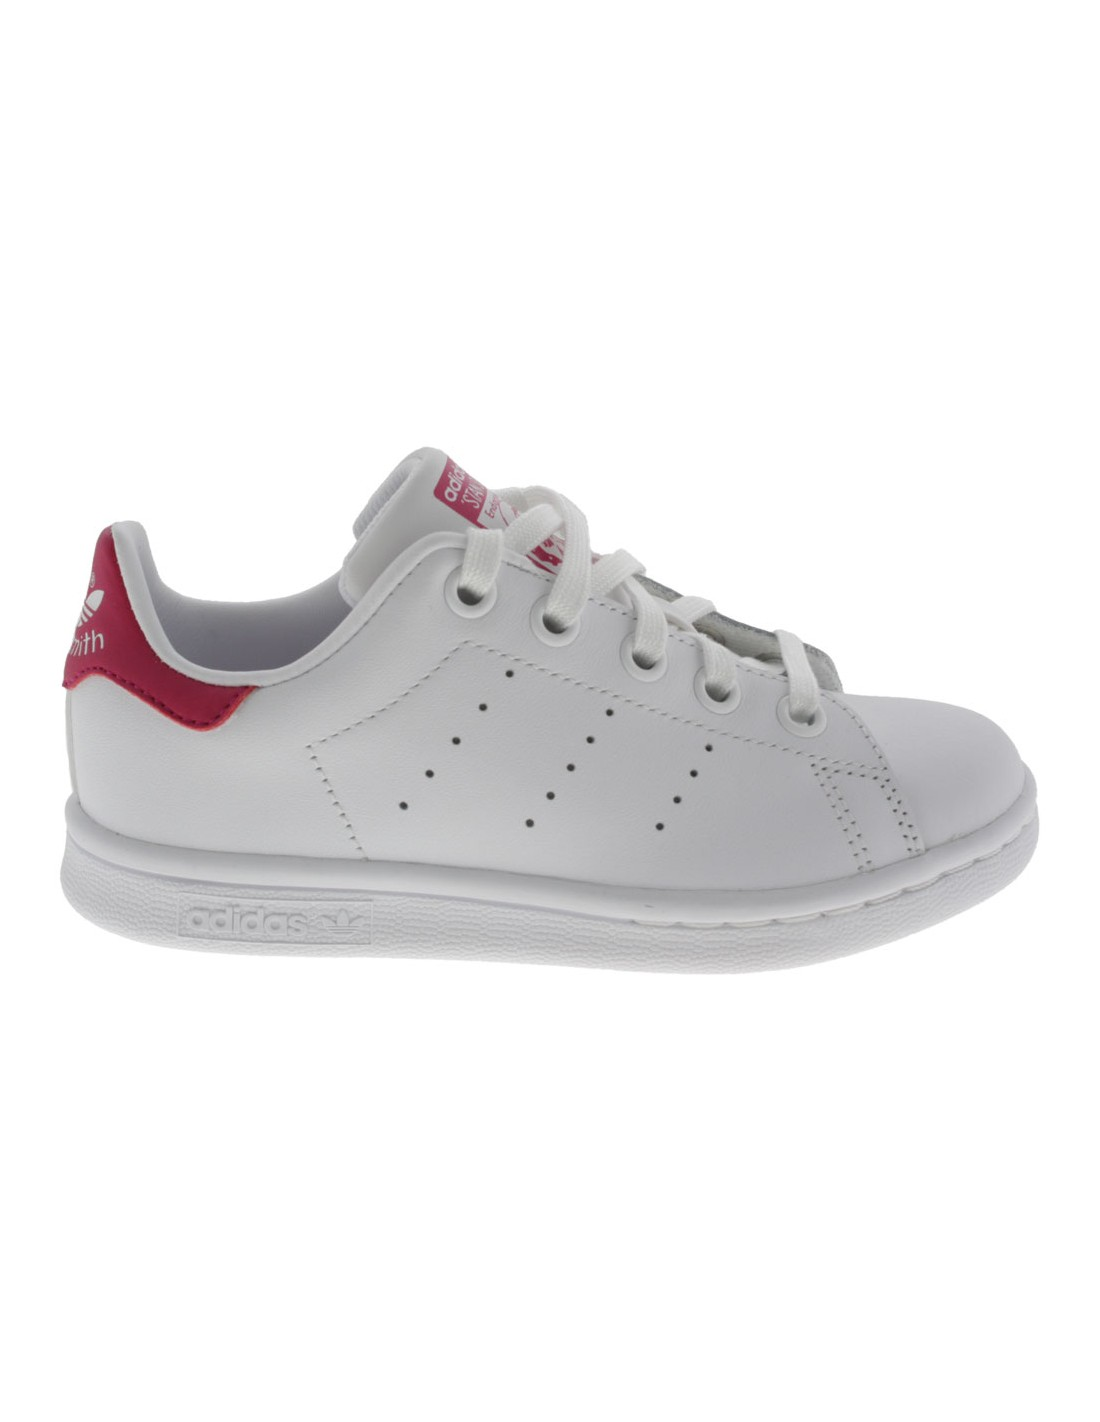 adidas bambina scarpe stan smith